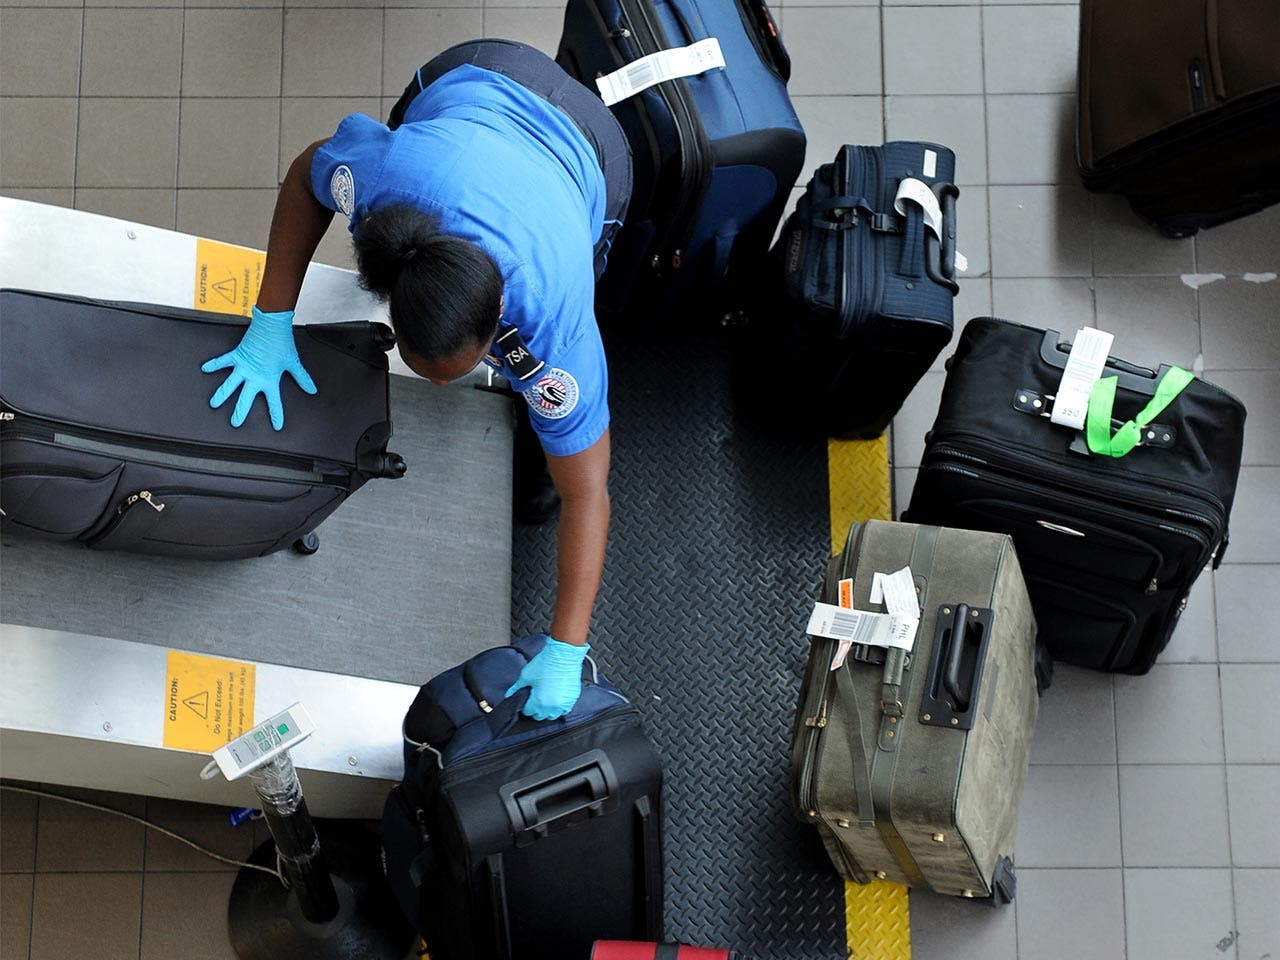 Luggages | Wally Skalij/Getty Images